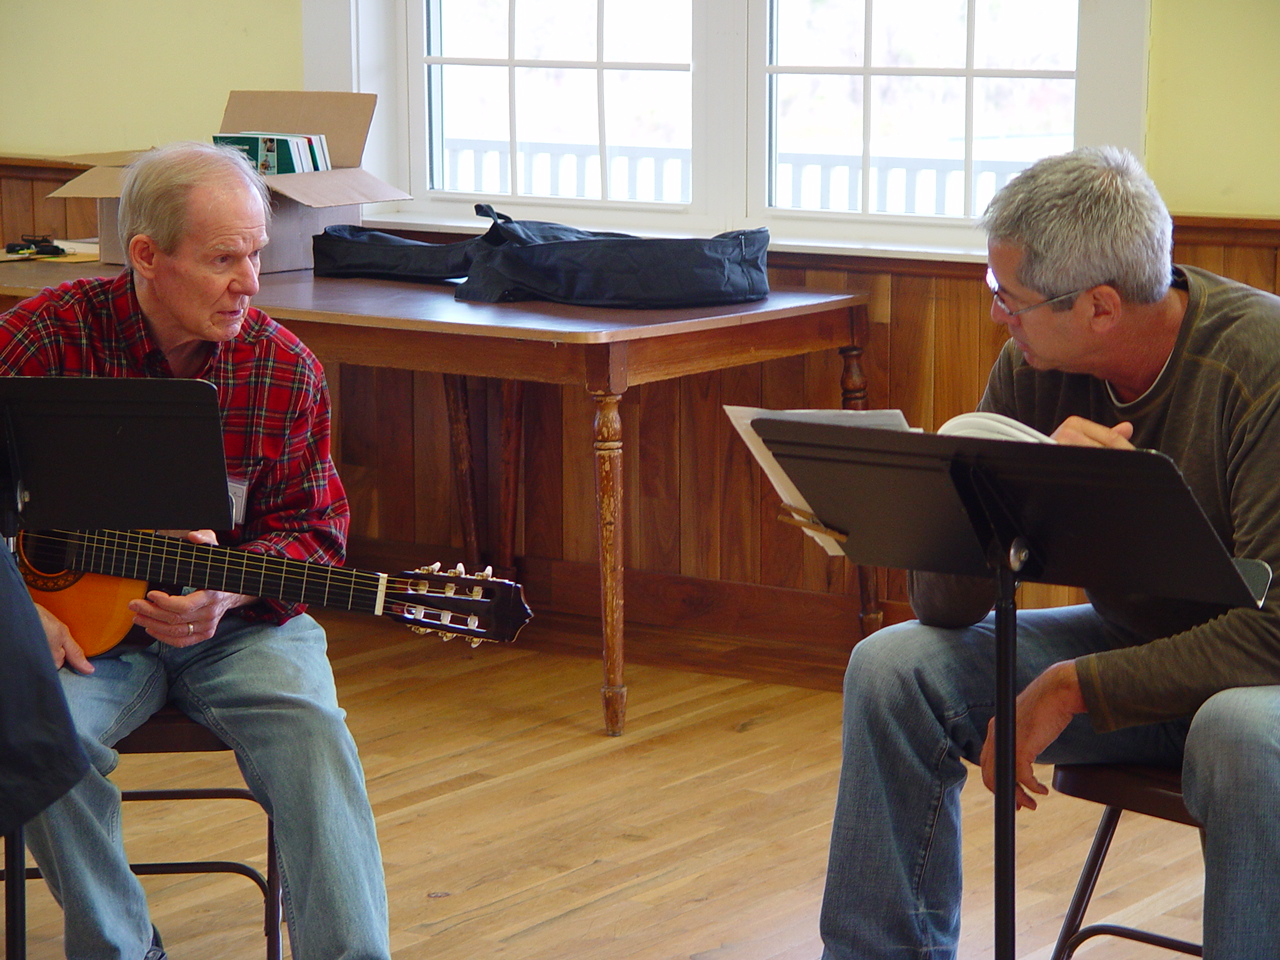 Learning Guitar at the Folk School